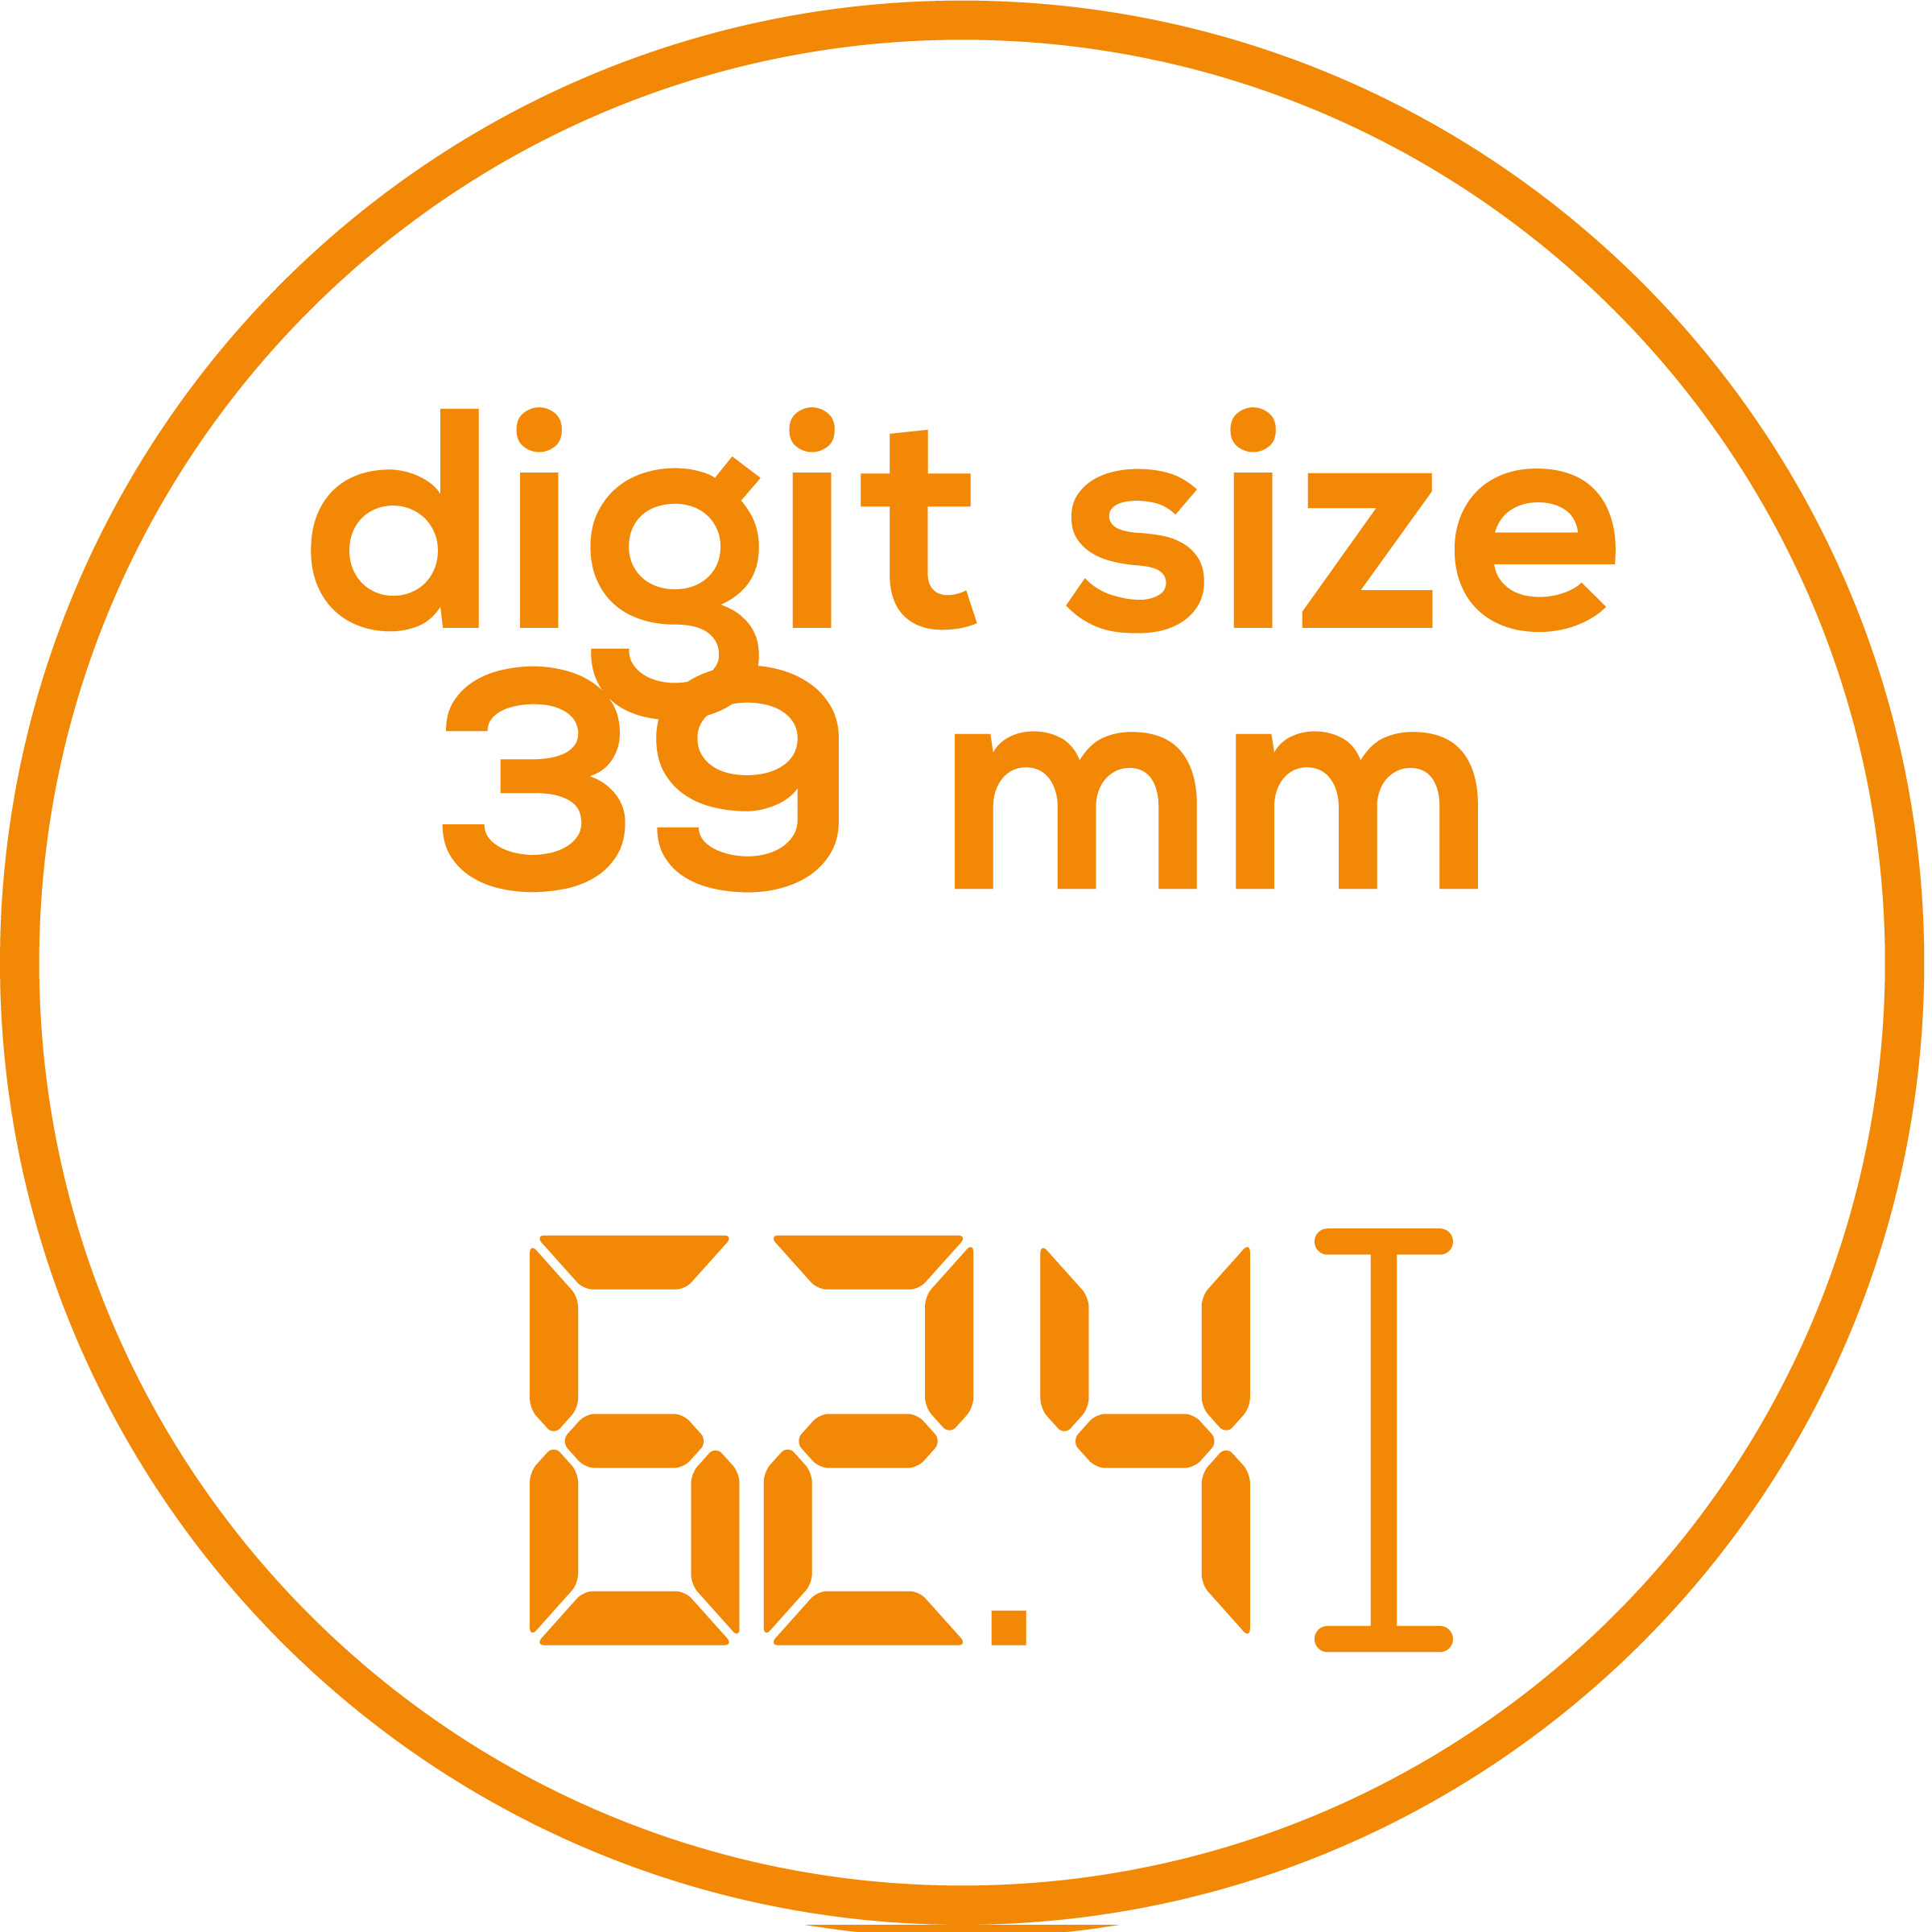 Digit size Digit size: 39 mm